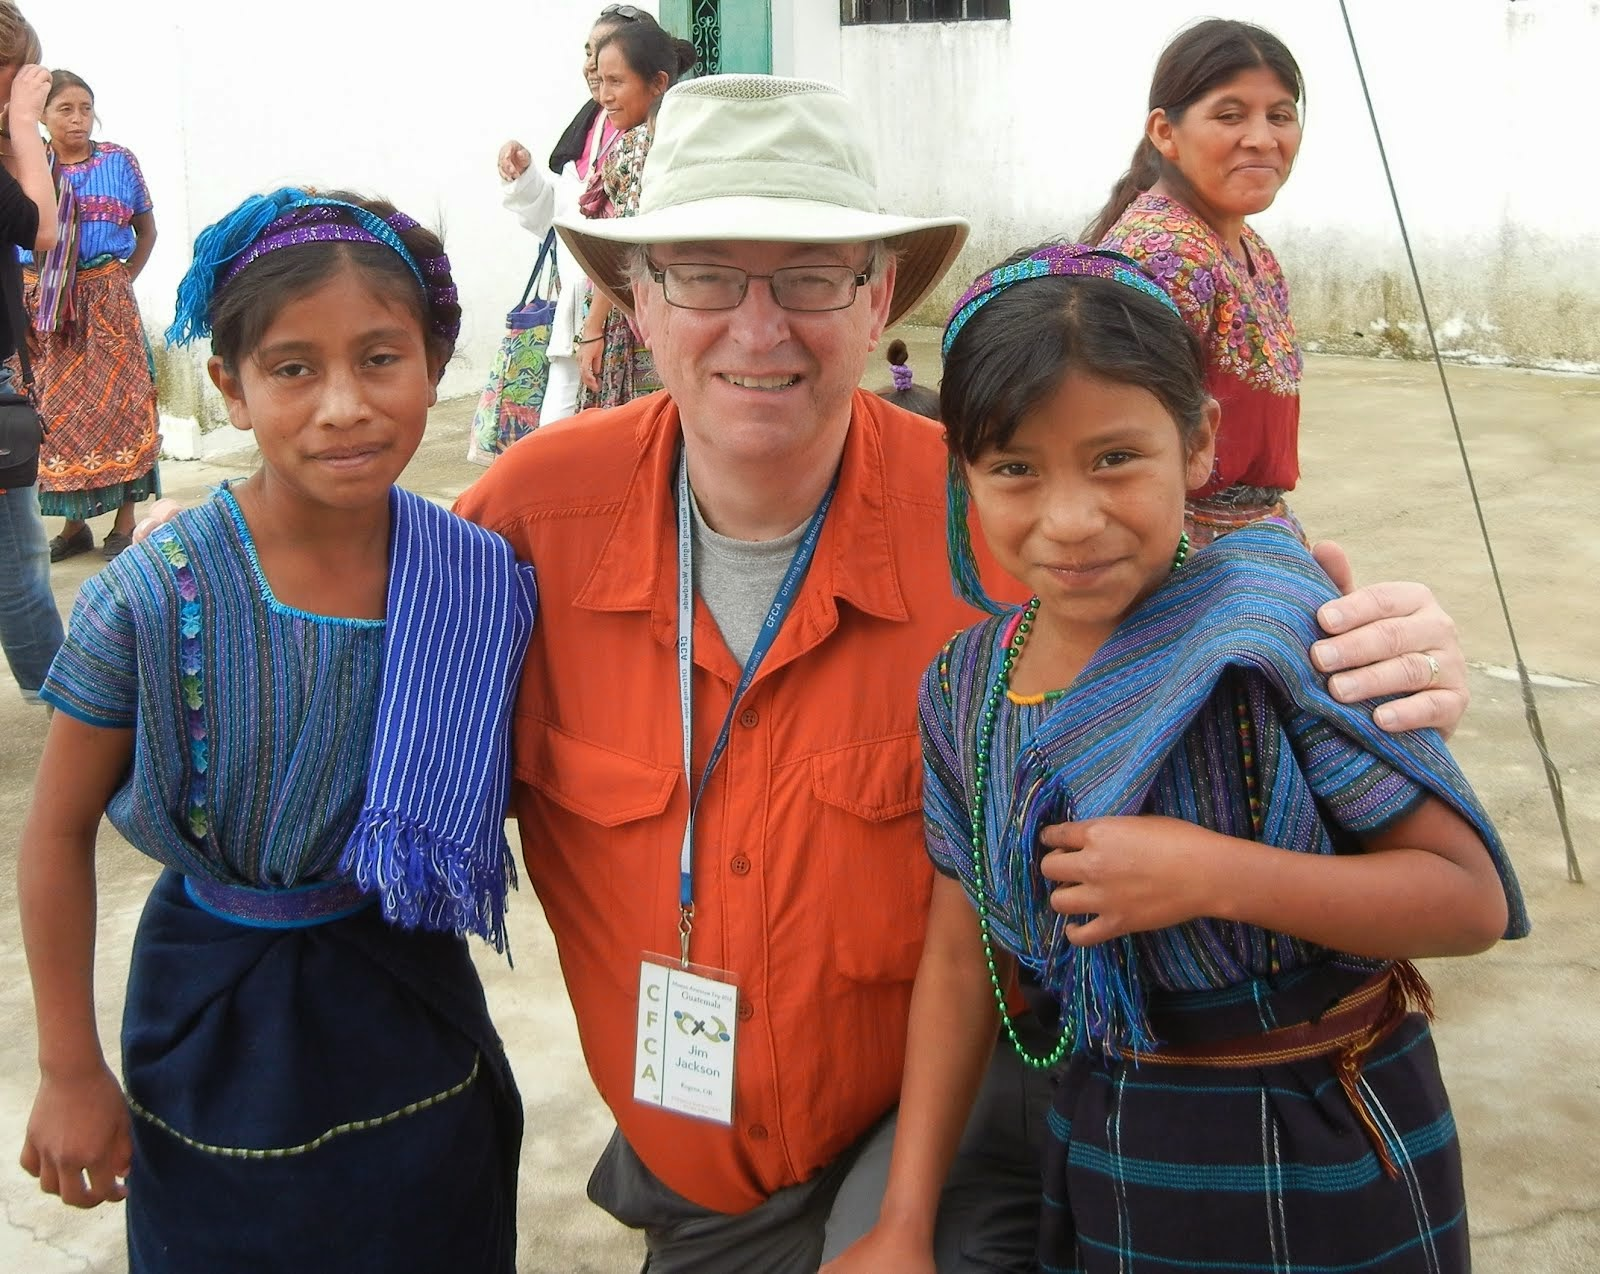 In Guatemala with Unbound